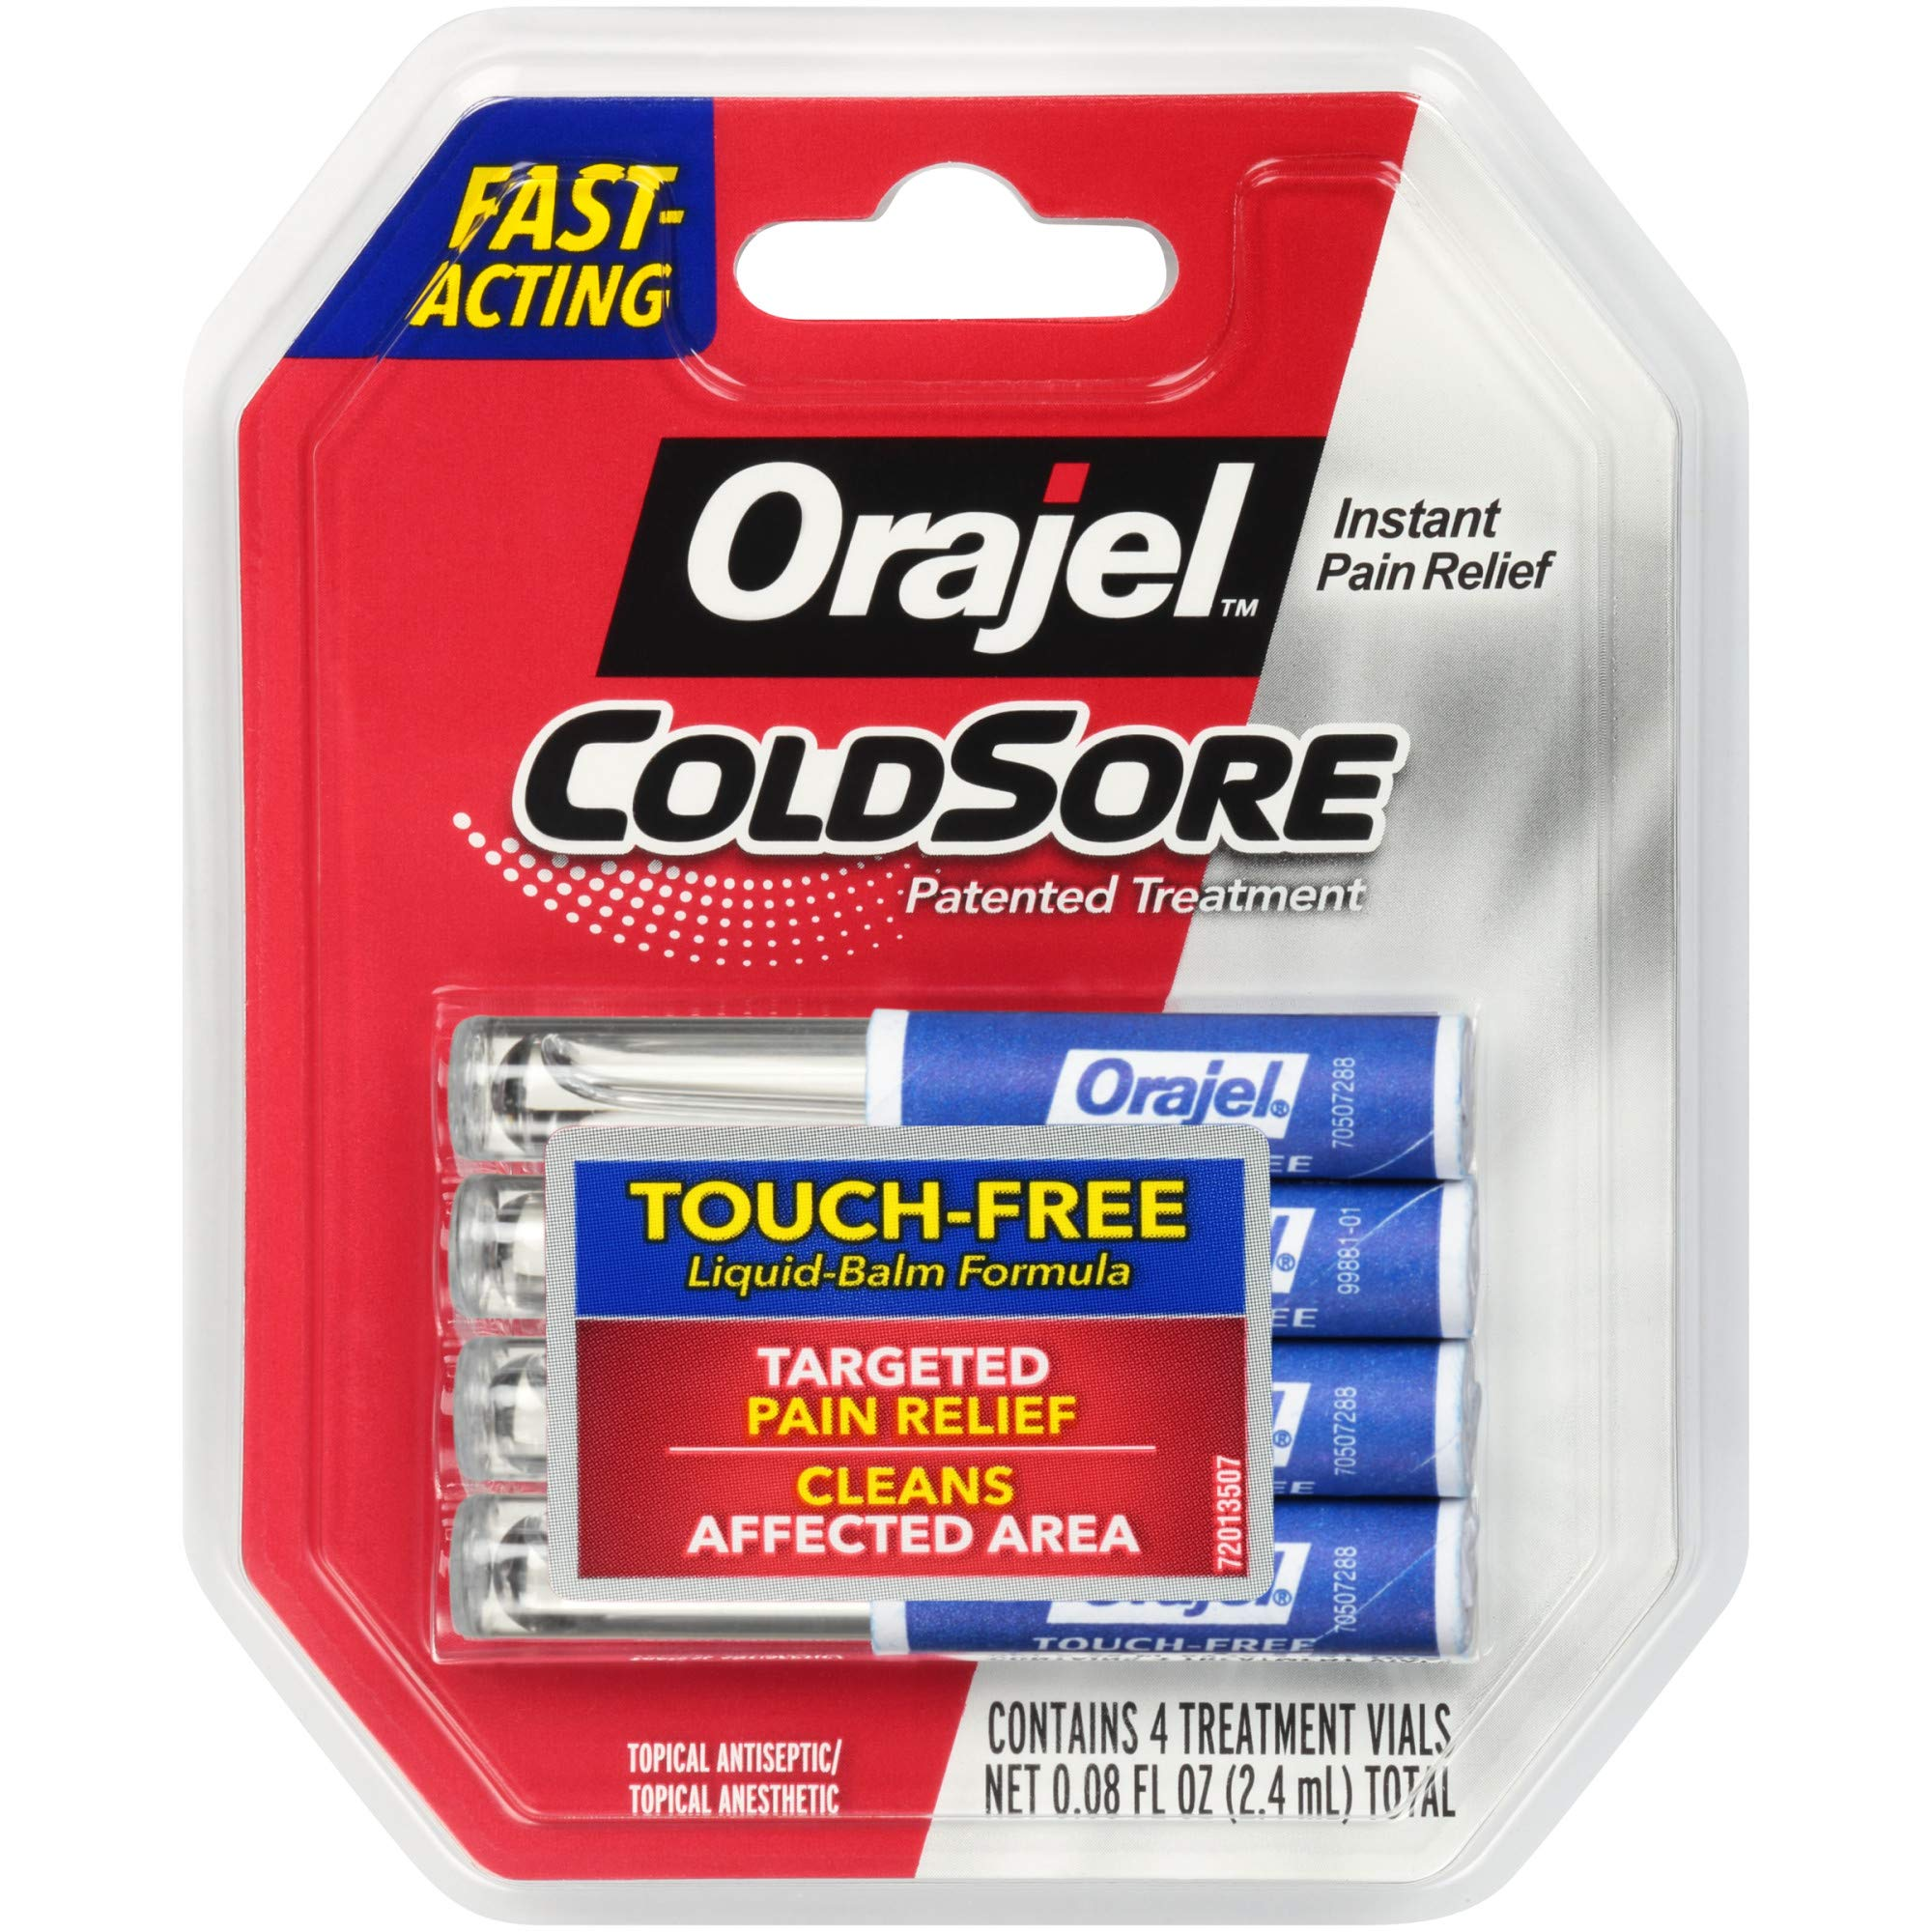 Orajel Touch-Free Cold Sore Patented Treatment .08 OZ by Orajel